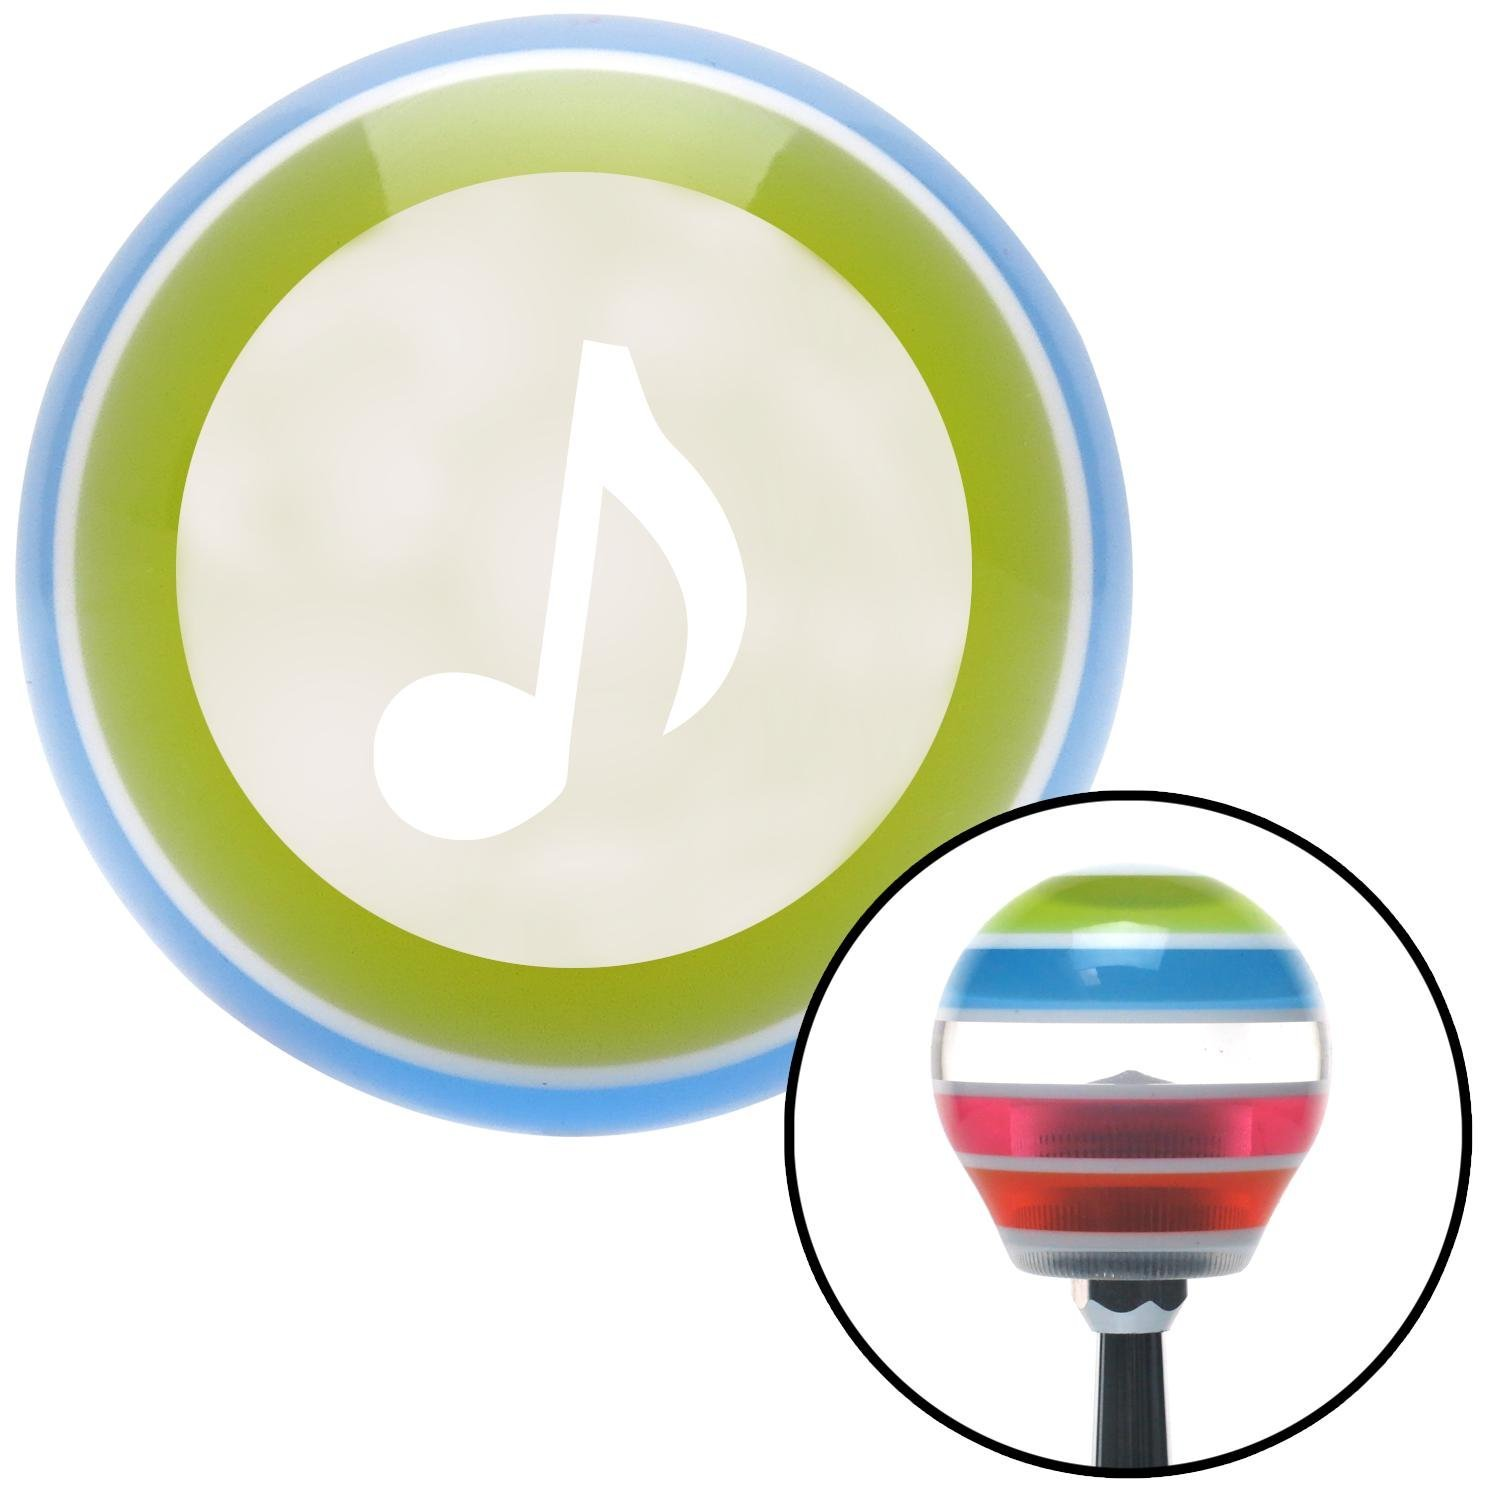 White Music Note American Shifter 135230 Stripe Shift Knob with M16 x 1.5 Insert